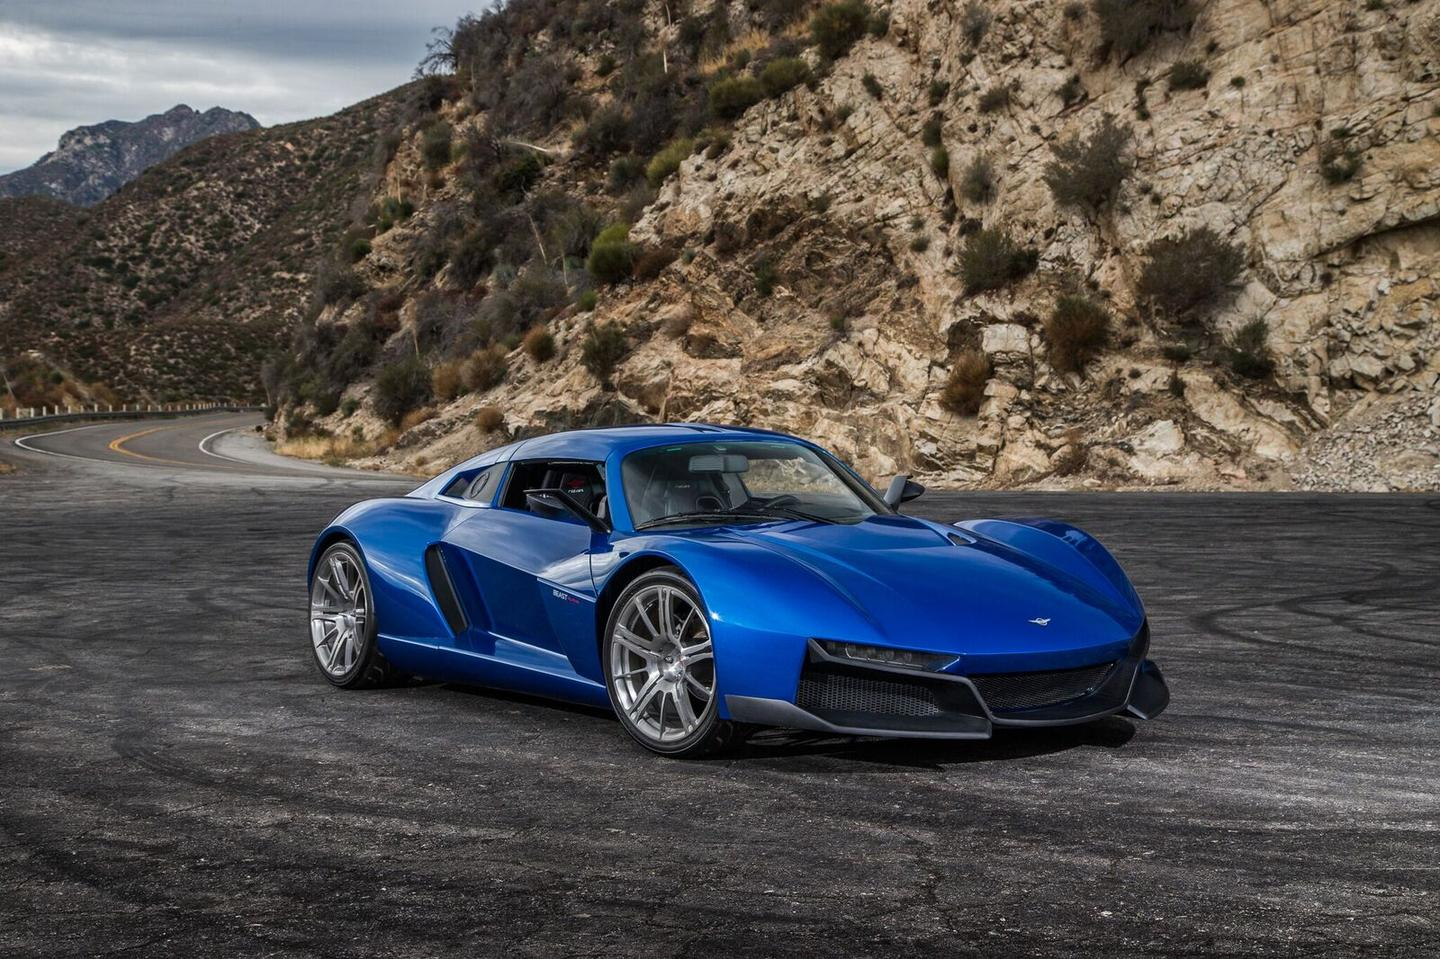 The Rezvani Beast Alpha is powered by a 2.4-liter Honda engine